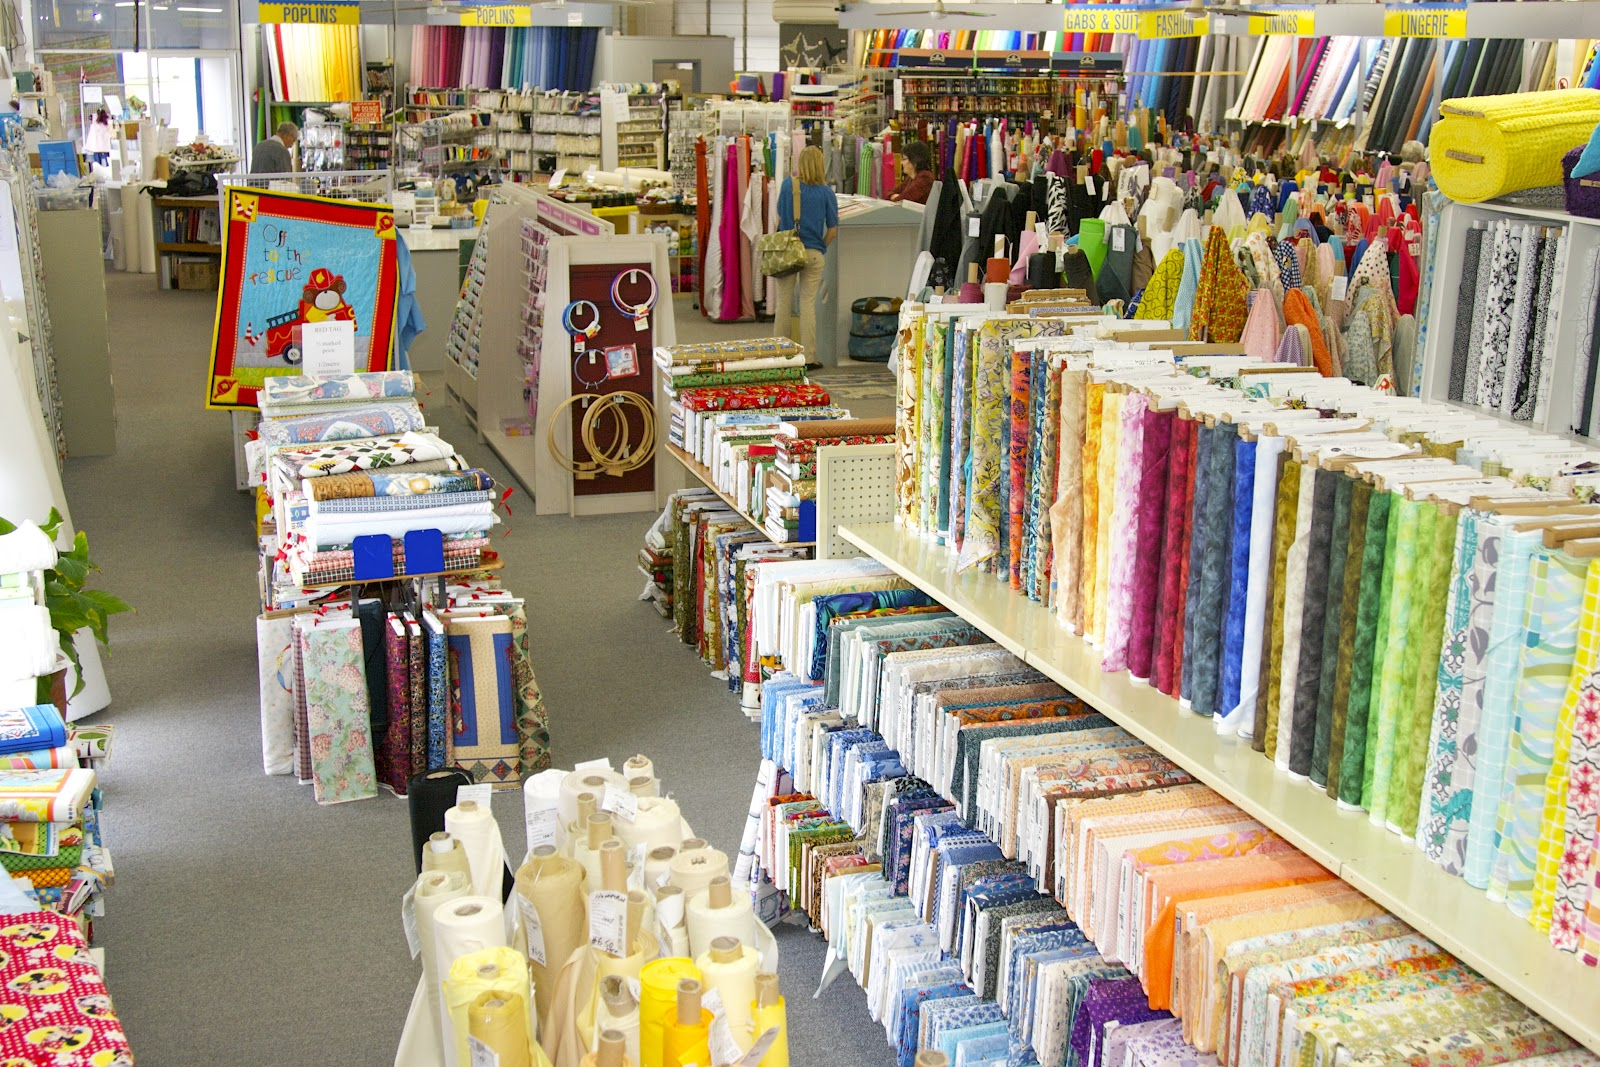 Bargain Box Fabrics Melton, Melton South, VIC. likes · talking about this · 10 were here. Our experienced staff have been catering to the needs 5/5(23).